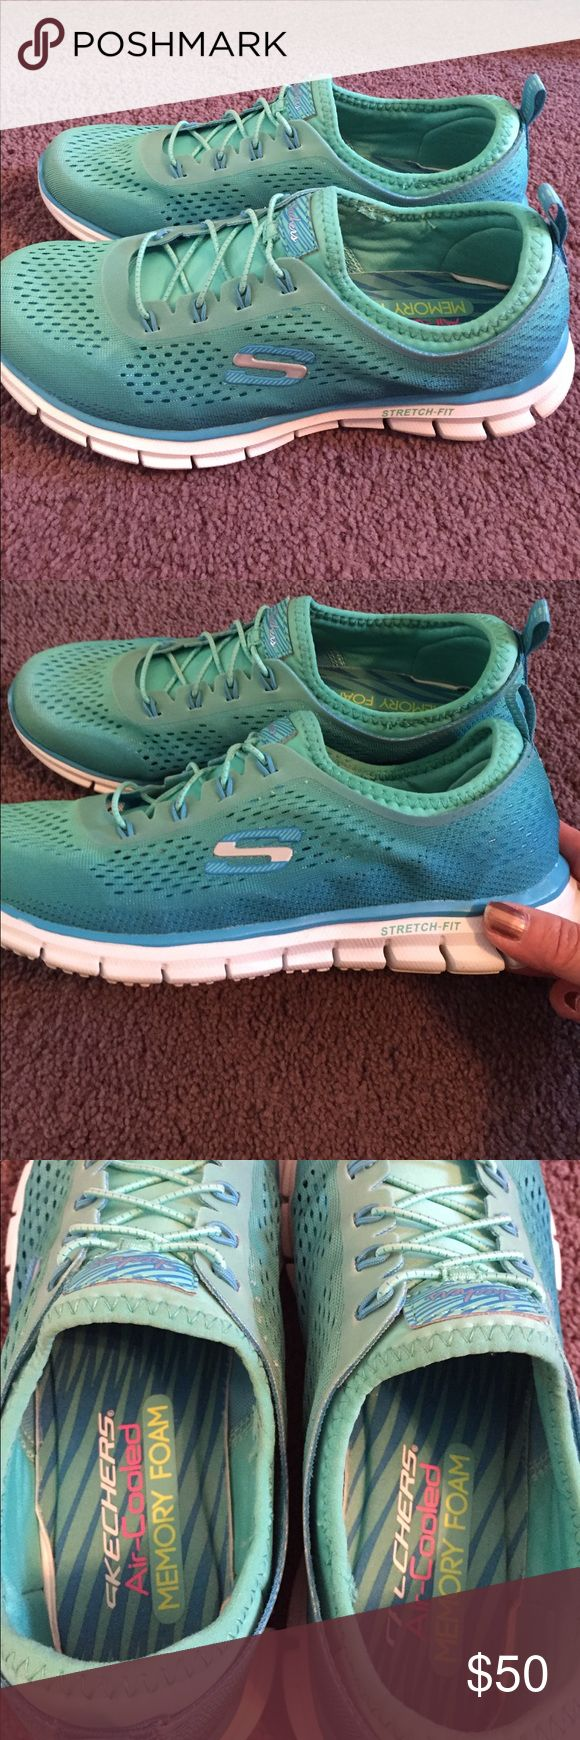 🇺🇸Sale! Like New! Skechers Sneakers Memory Foam Gorgeous Seafoam Green & Turquiose Ombre colors. Amazing memory foam inside so comfy! Only wore once in house didnt fit. Skechers Shoes Athletic Shoes